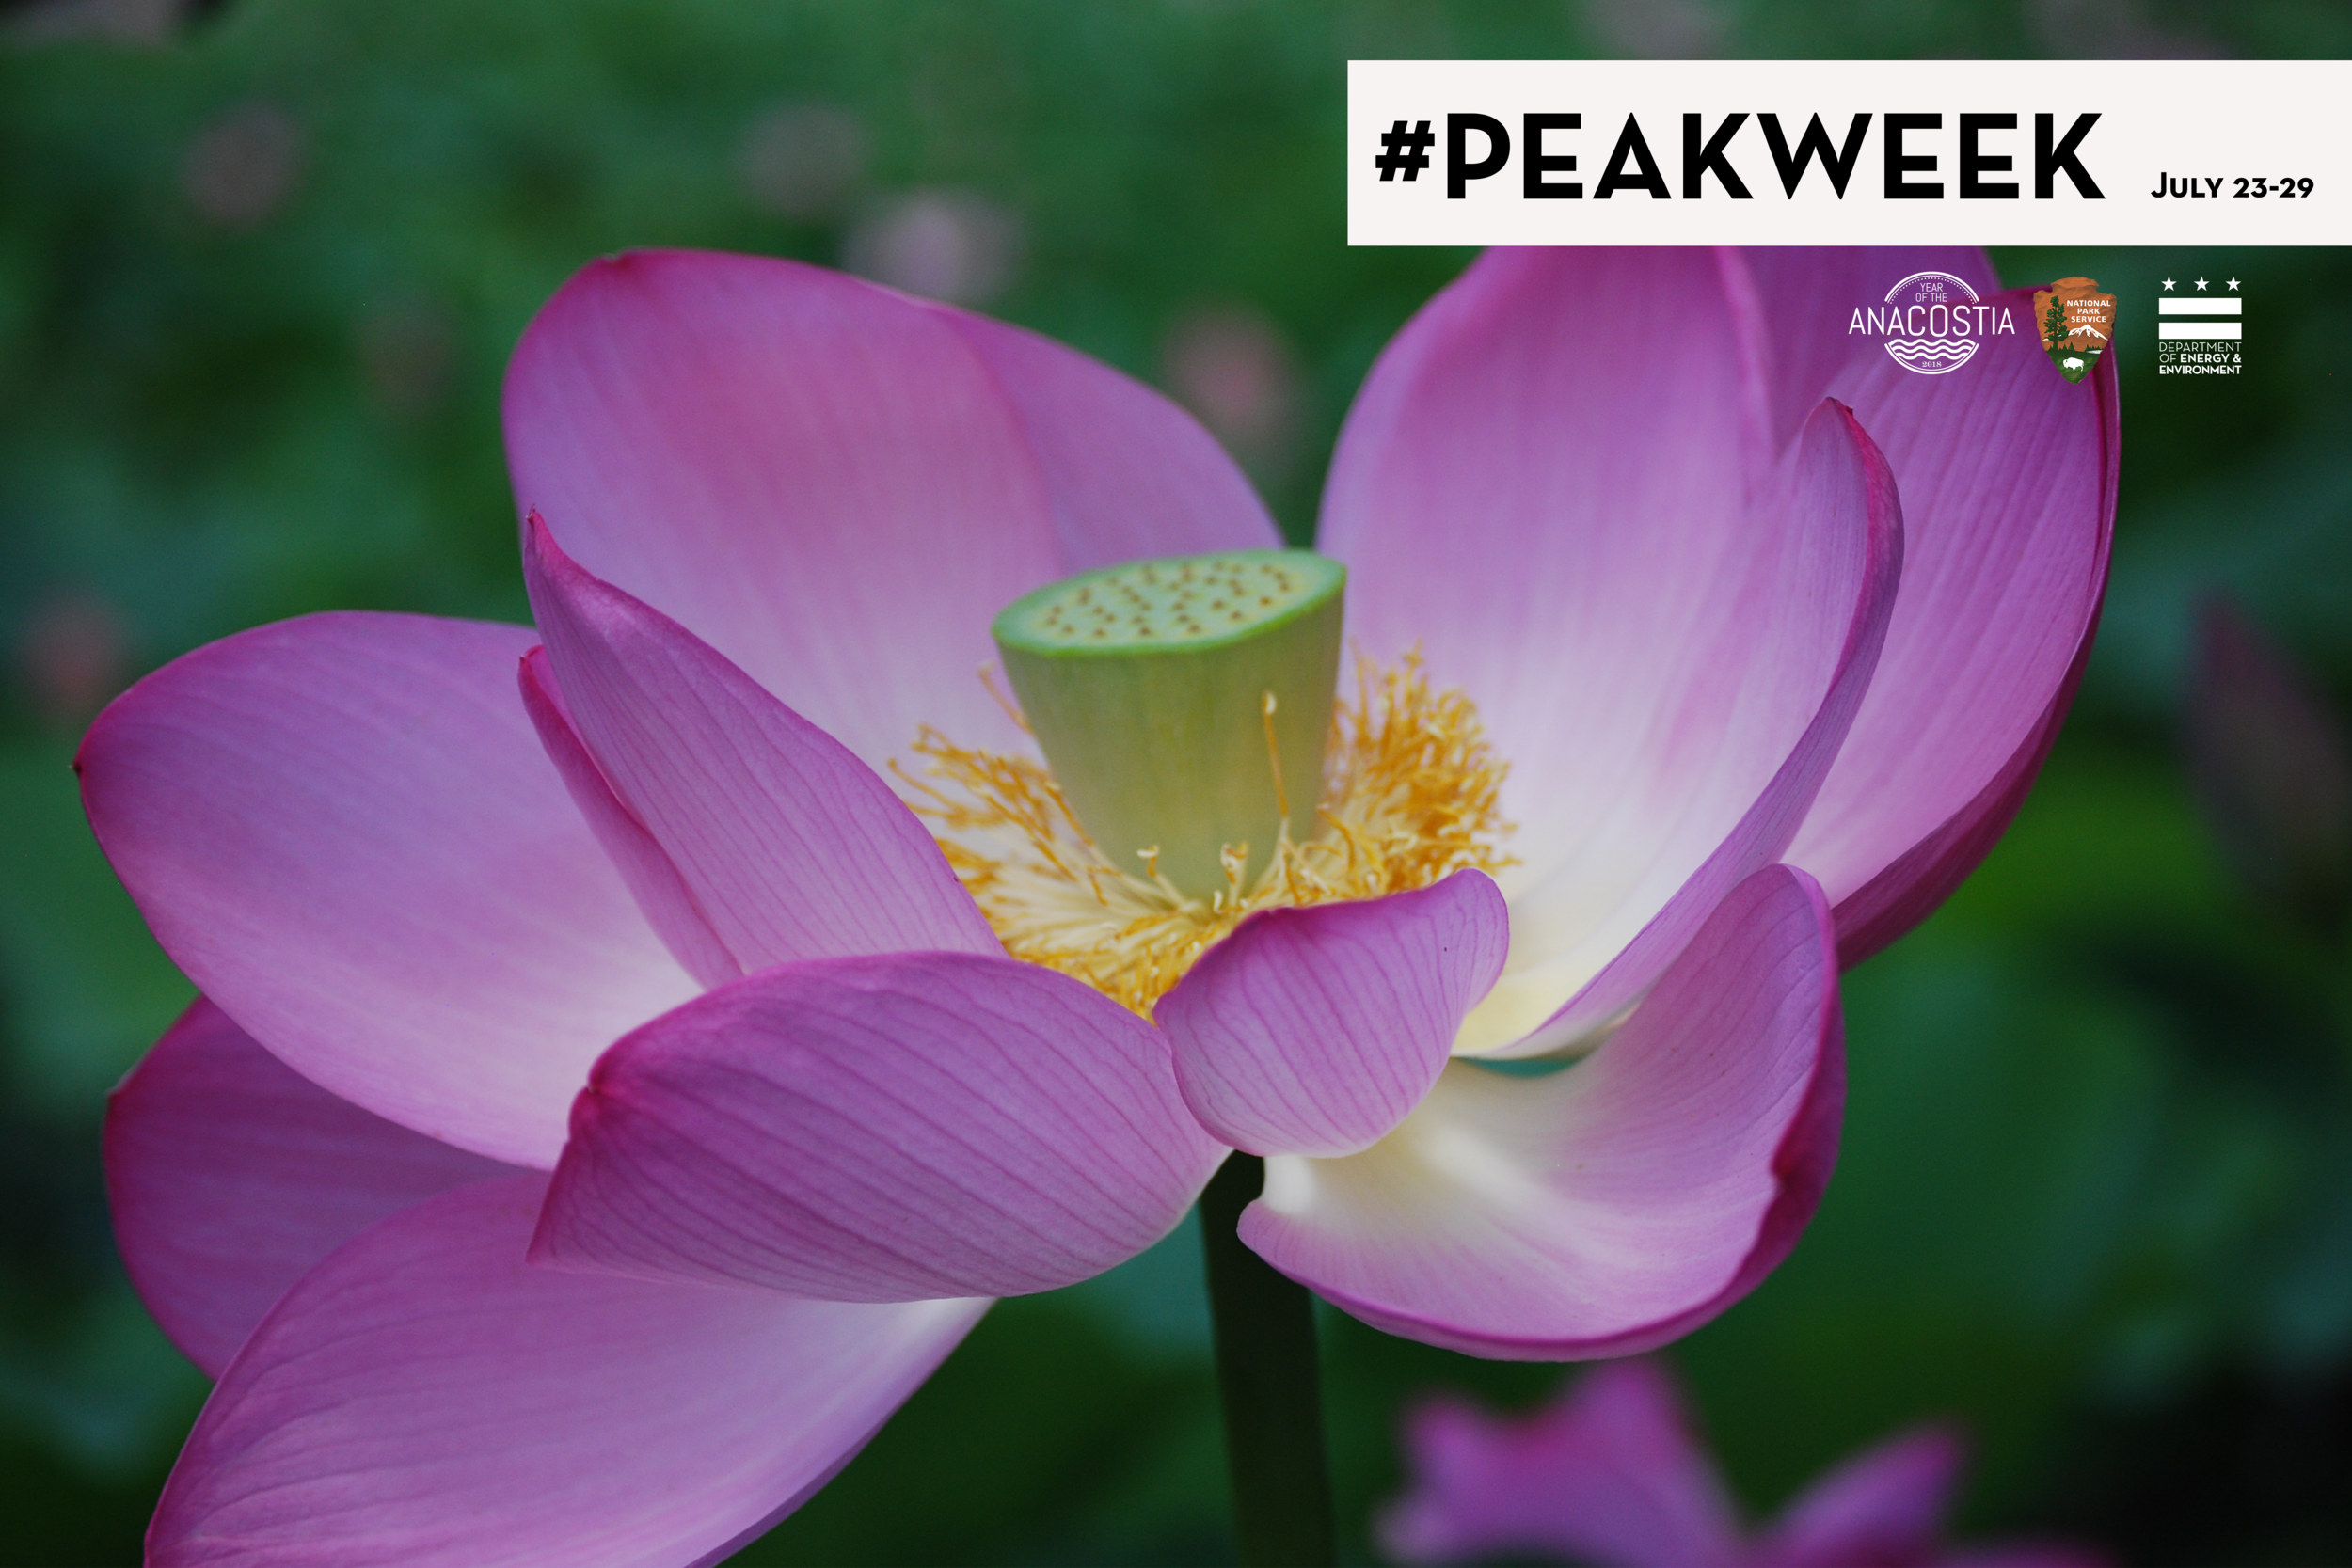 - Come to Kenilworth Aquatic Gardens the week of July 22 and experience a truly unique peak bloom. Everything you could want to know about Kenilworth Aquatic Gardens is in the NPS Cultural Landscapes report!Open 9 am to 5 pm daily, the gardens are accessible by bike, Metro and canoe!Is there a better reason to explore the Anacostia River watershed this week for the Year of the Anacostia?The week includes:Wednesday, July 25 5:30 pm & 6:30 pmRiver Ride with the Anacostia Watershed SocietyTake a pontoon ride on the Anacostia River and learn about the natural environment that surrounds the gardens.Online registration required.Thursday, July 26 10 am – 2 pmFrom Veteran to Water GardenerKenilworth Aquatic Gardens was created by Civil War veteran W.B. Shaw. He started water gardening as a therapeutic hobby, which later grew into a thriving business. Veterans are encouraged to join us for an honorary day of fun at the gardens.A DC Neighborhood by the Anacostia River: Kenilworth is a great read for history of the gardens and community.Friday, July 27 7 – 9 pmPark After DarkEnjoy a unique ranger-led experience through the gardens. See night - blooming lilies, hear and spot wildlife that visit the park at night and experience the park after dark in this rare program.Saturday, July 28 5:30 – 7:30 pmJazz and Lily PadsBring a picnic and a blanket for a lovely evening of jazz at the gardens.